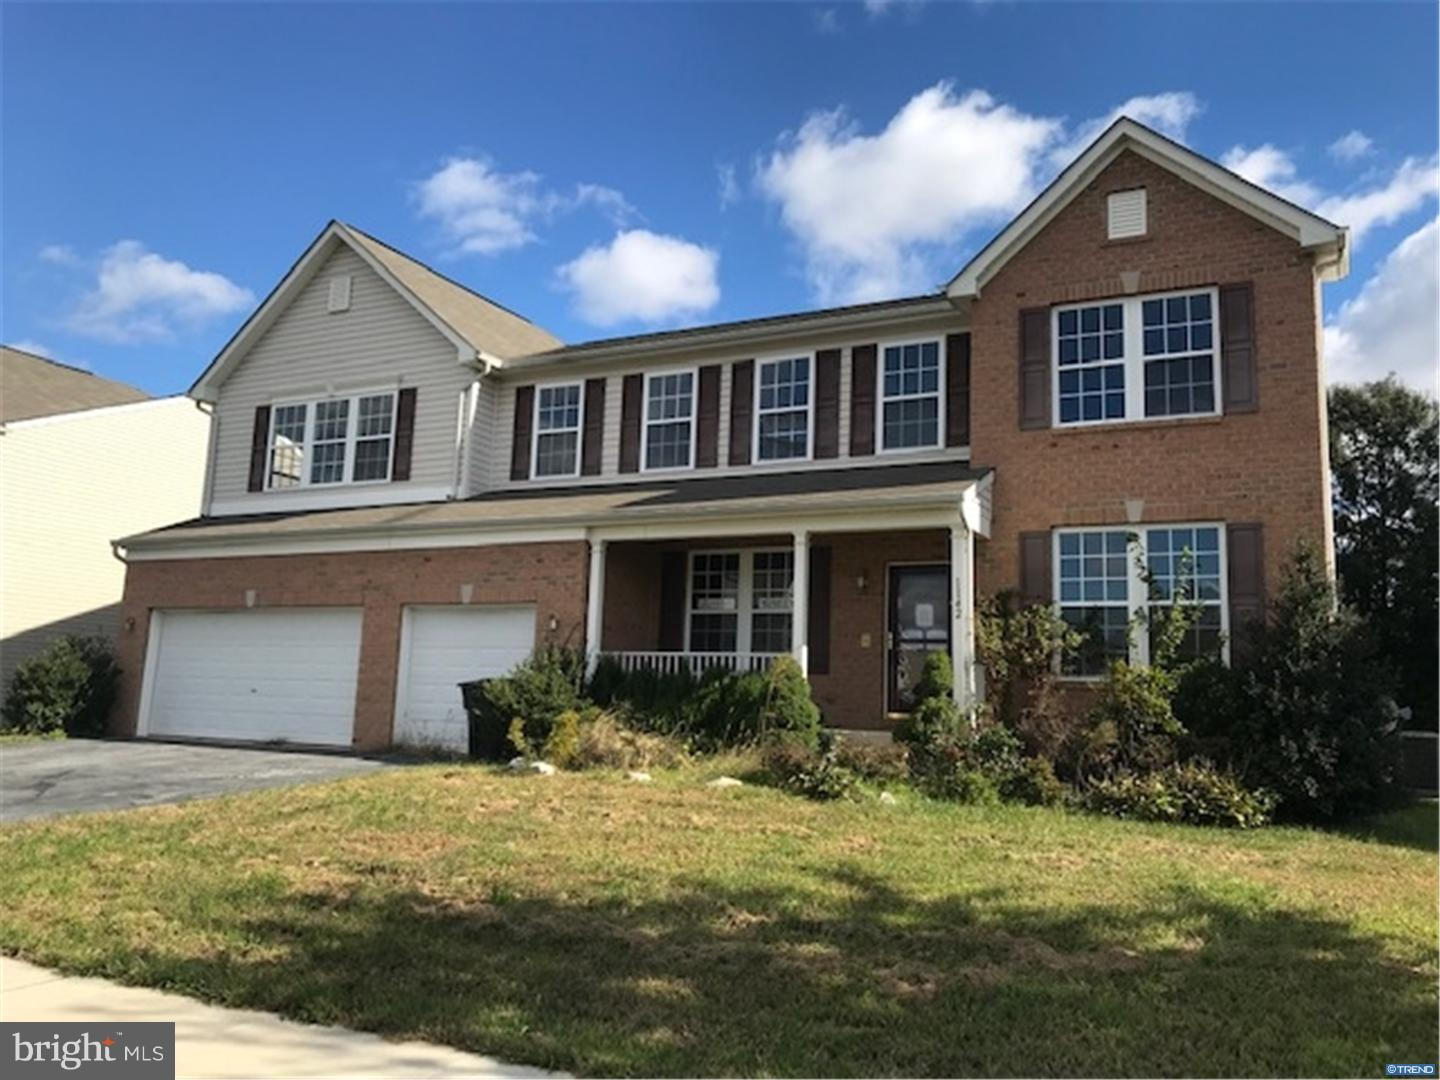 This property is eligible under the Freddie Mac First Look Initiative through November 29, 2018. Dur